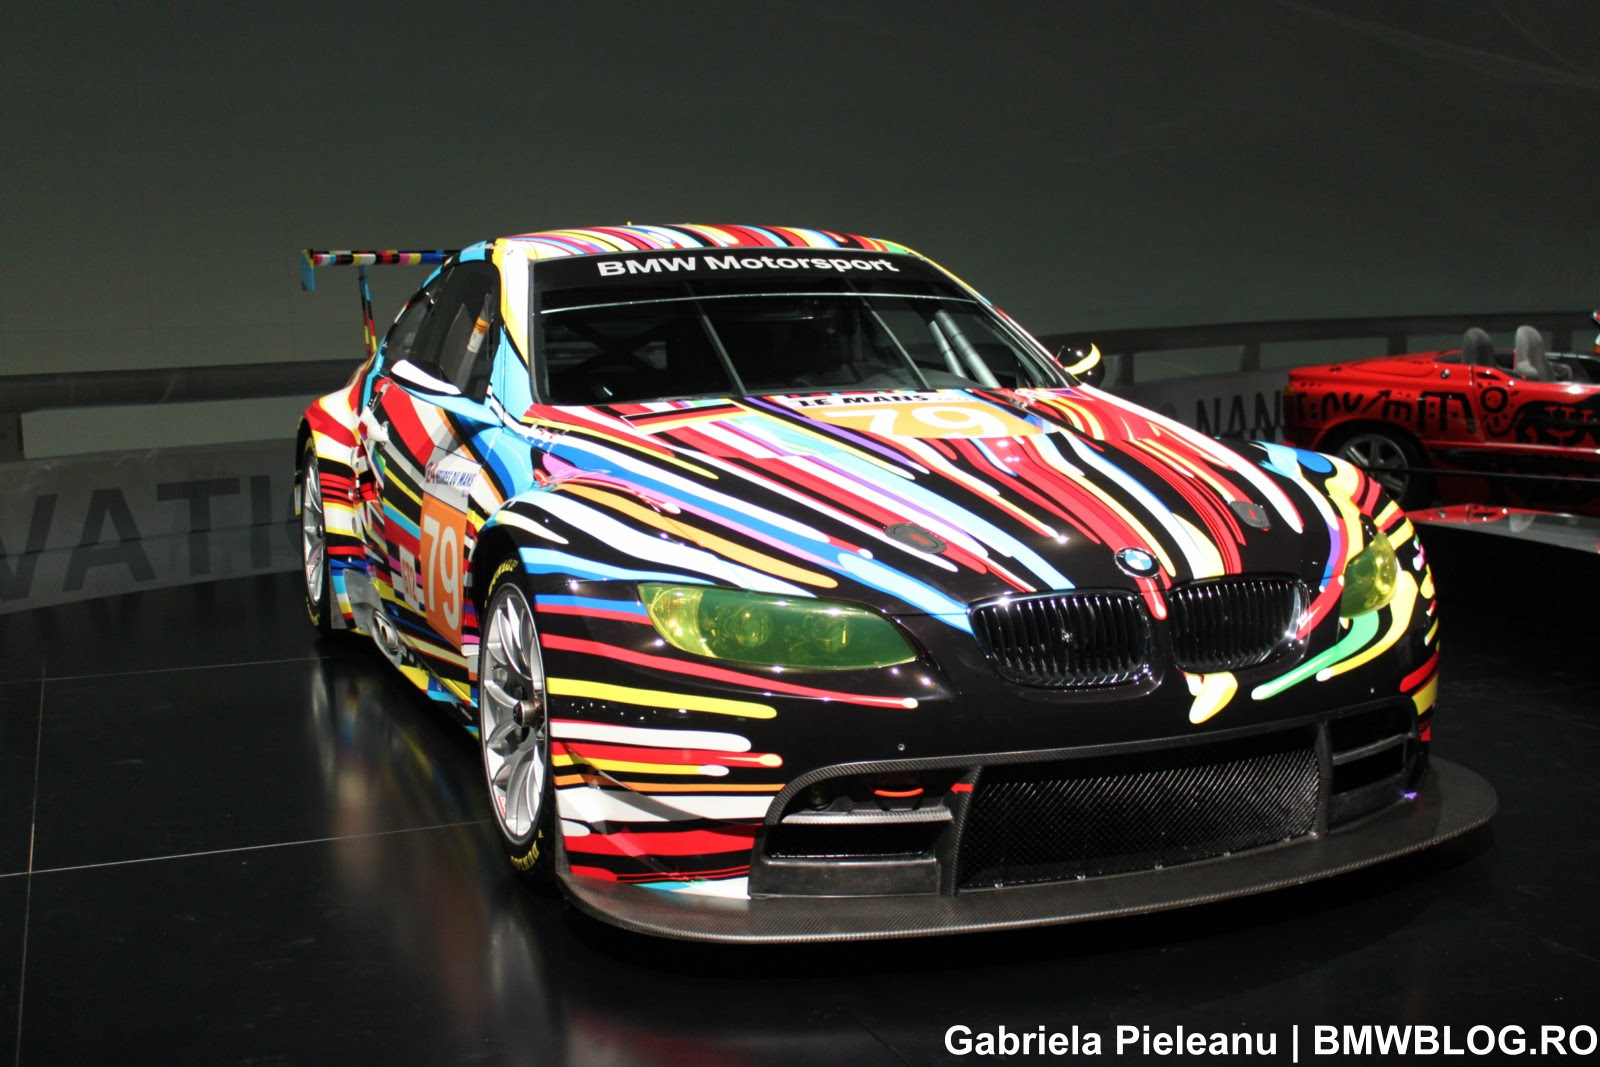 BMW M3 GT2 Art Car at the BMW Museum